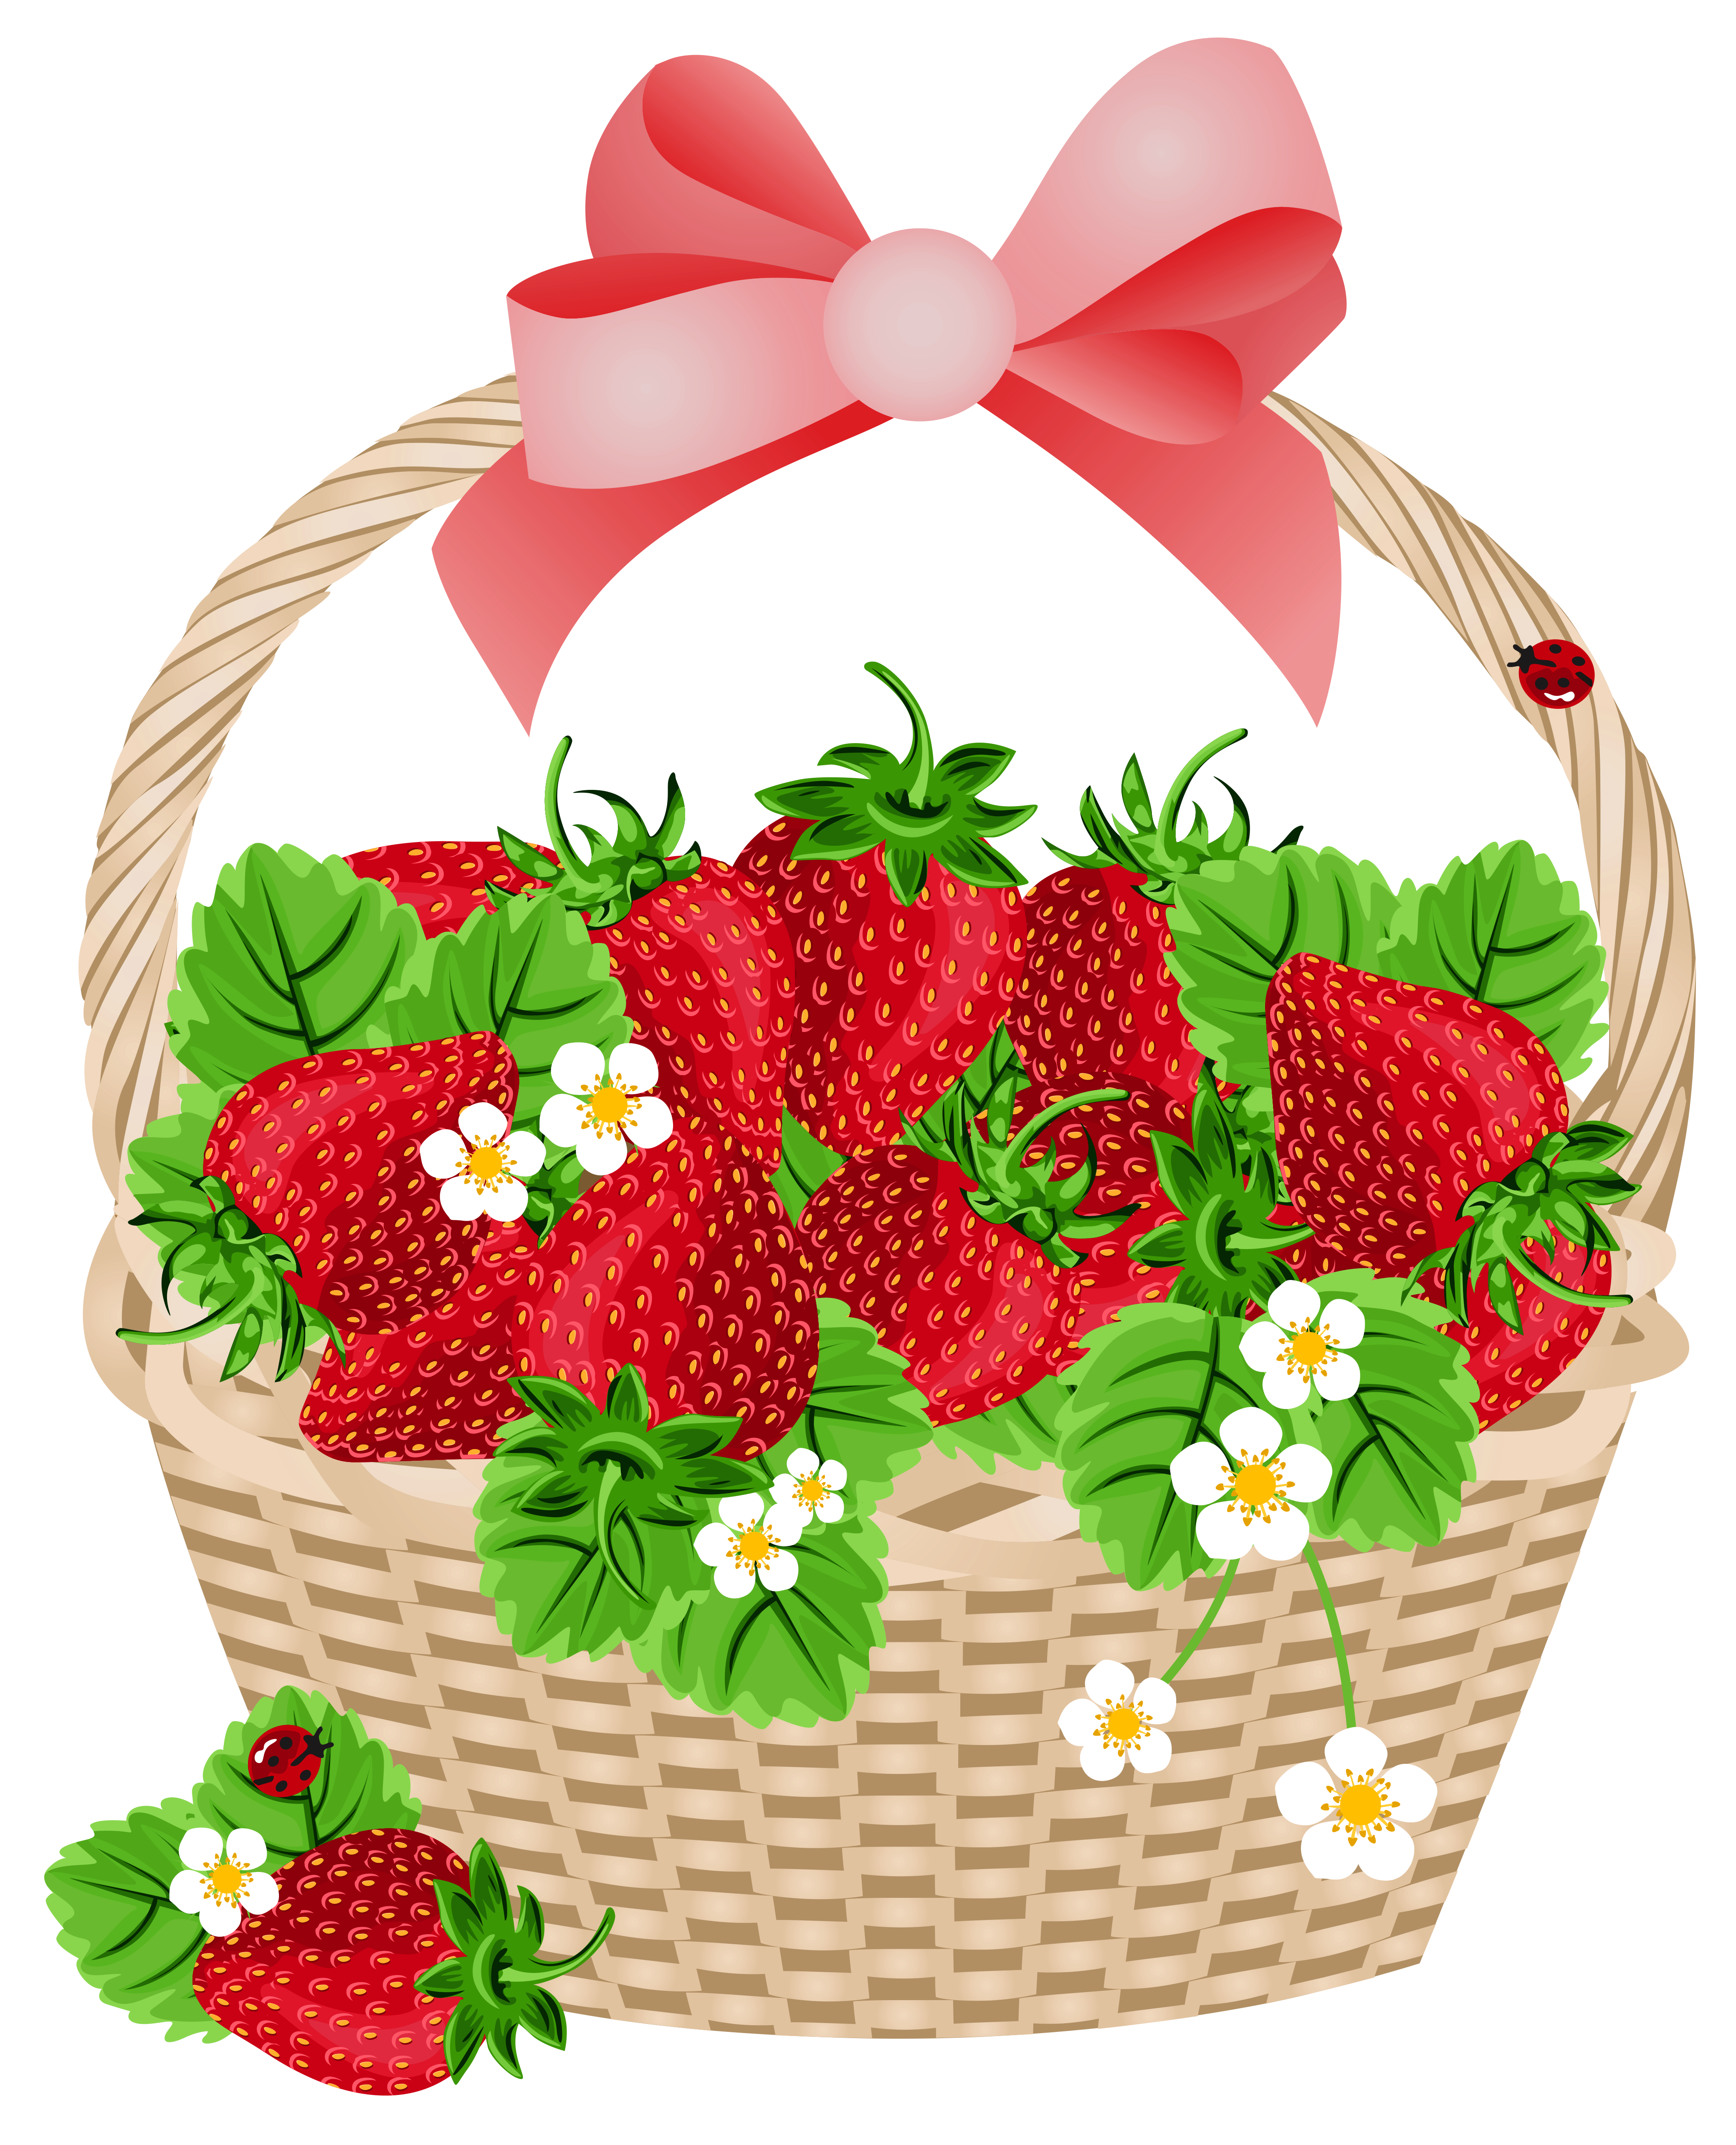 Strawberry flower clipart clip art black and white stock Strawberry Basket Clipart clip art black and white stock